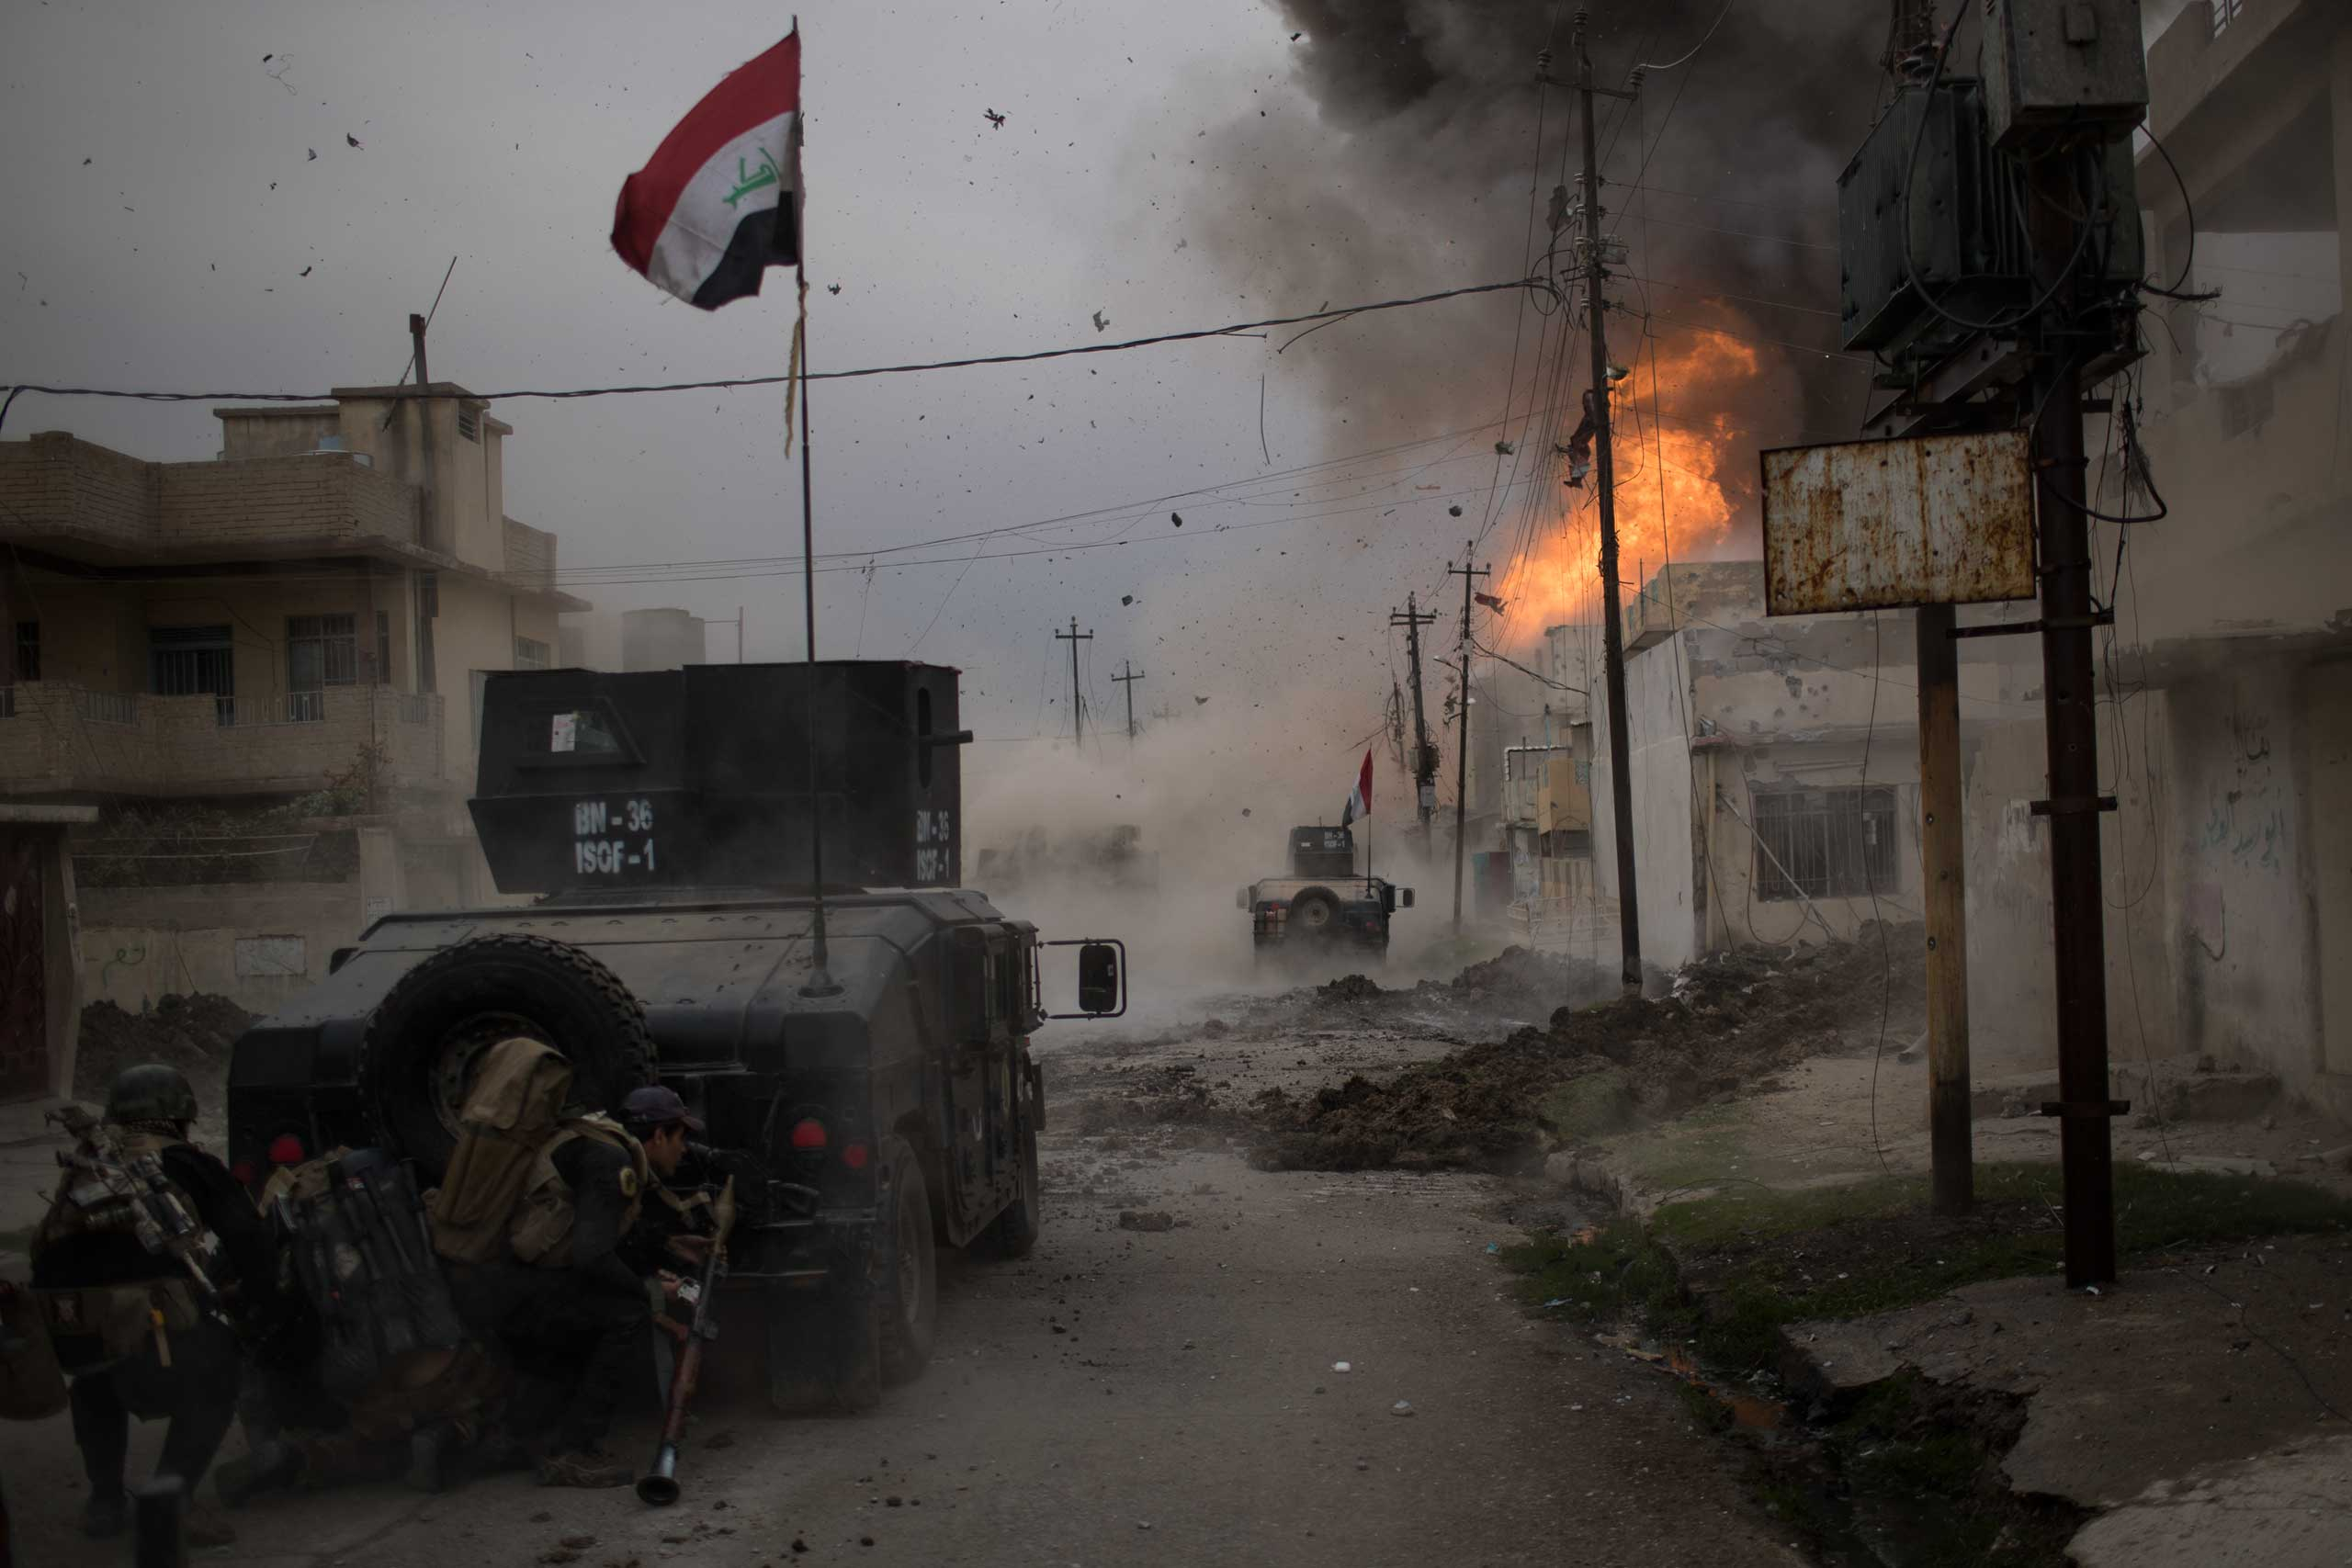 A car bomb explodes next to Iraqi special forces armored vehicles as they advance towards Islamic State-held territory in Mosul, Iraq, on Nov. 16, 2016.